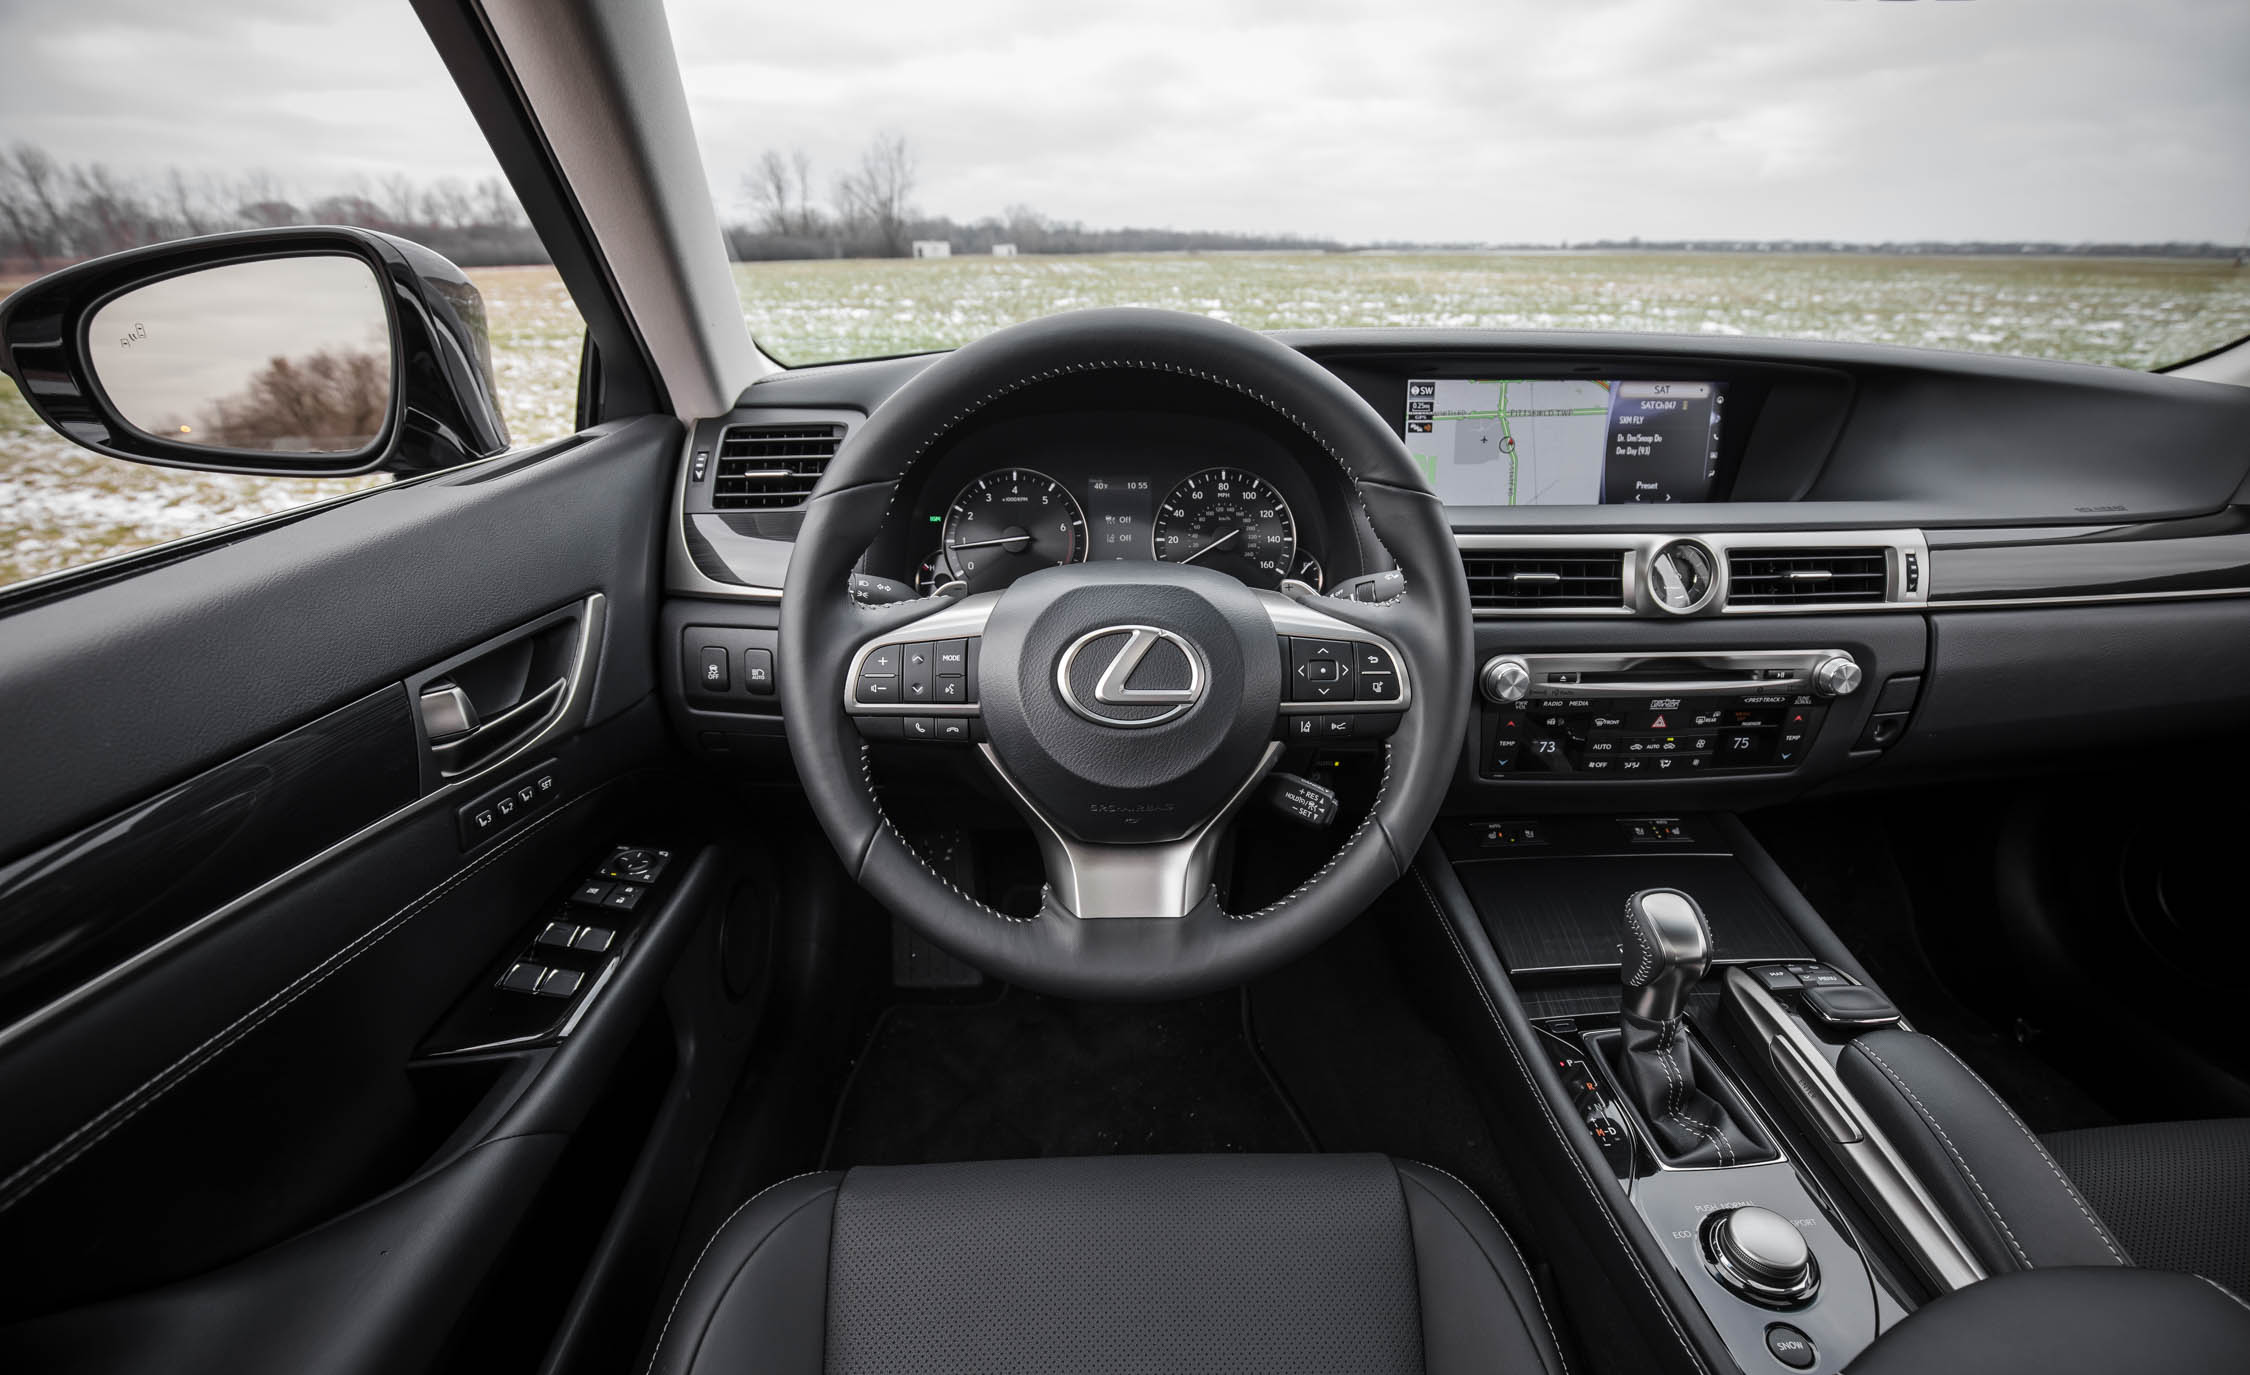 2017 Lexus GS200t Interior Cockpit Steering (Photo 17 of 26)